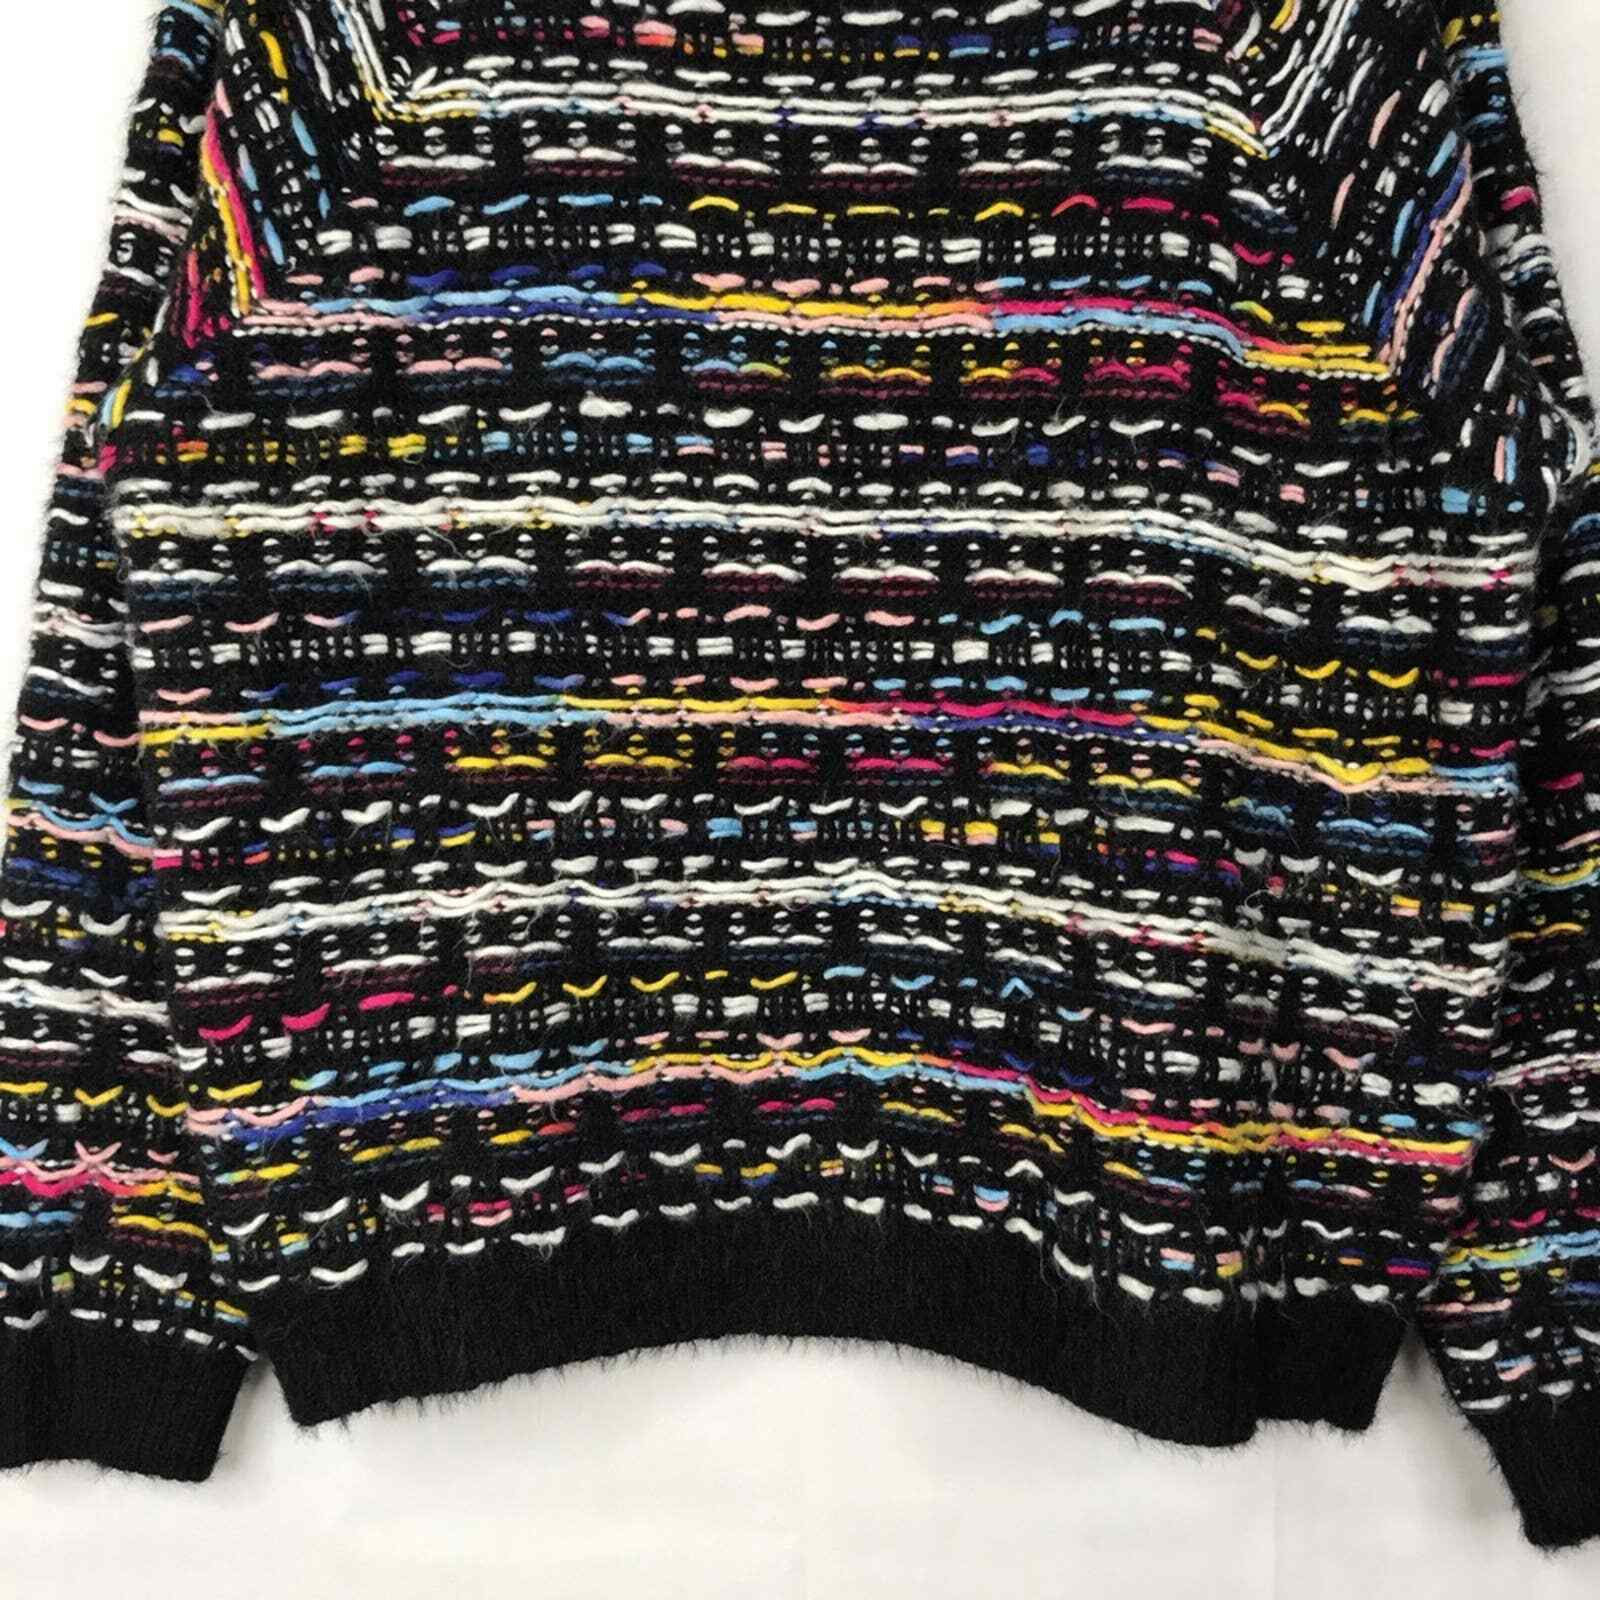 Lumiere multicolored textured knit sweater - image 4